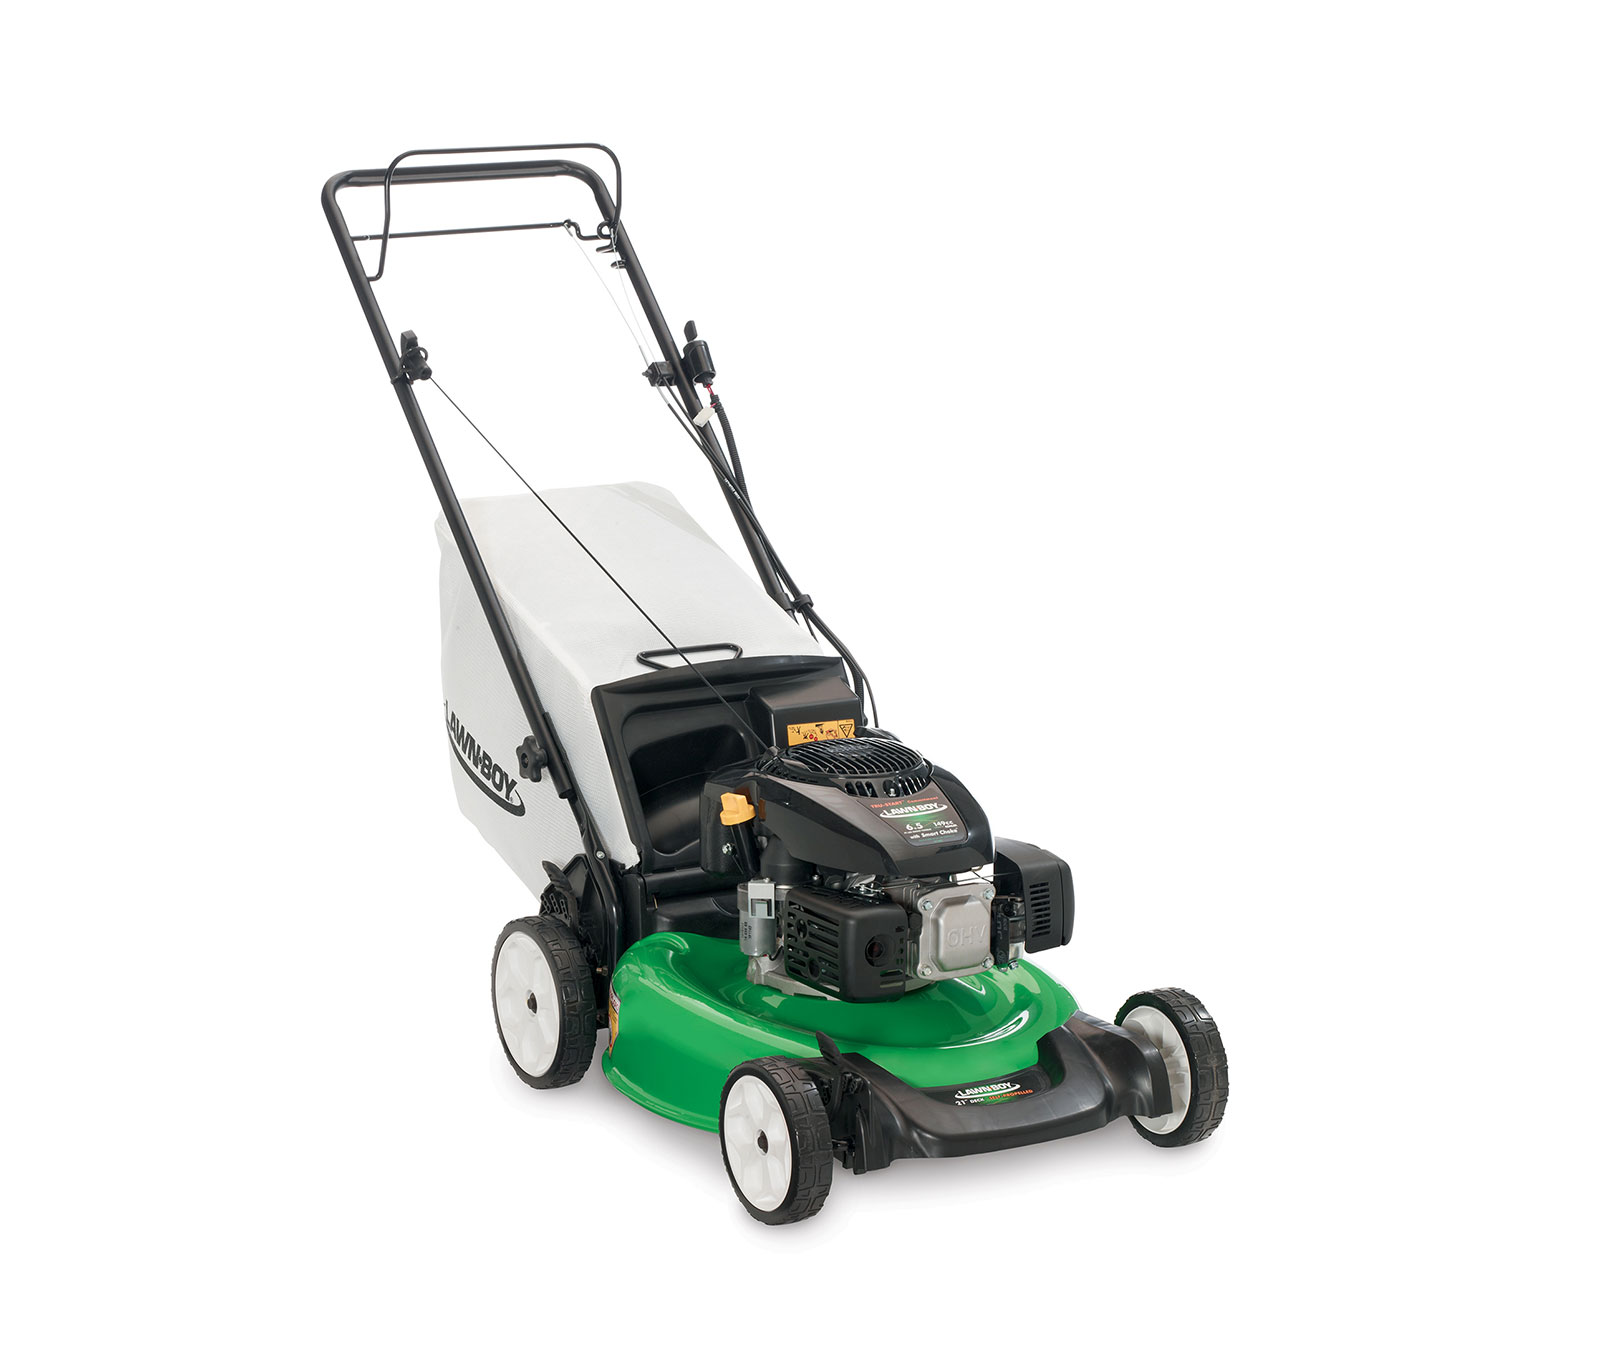 lawnboy mowers all wheel drive mower engine